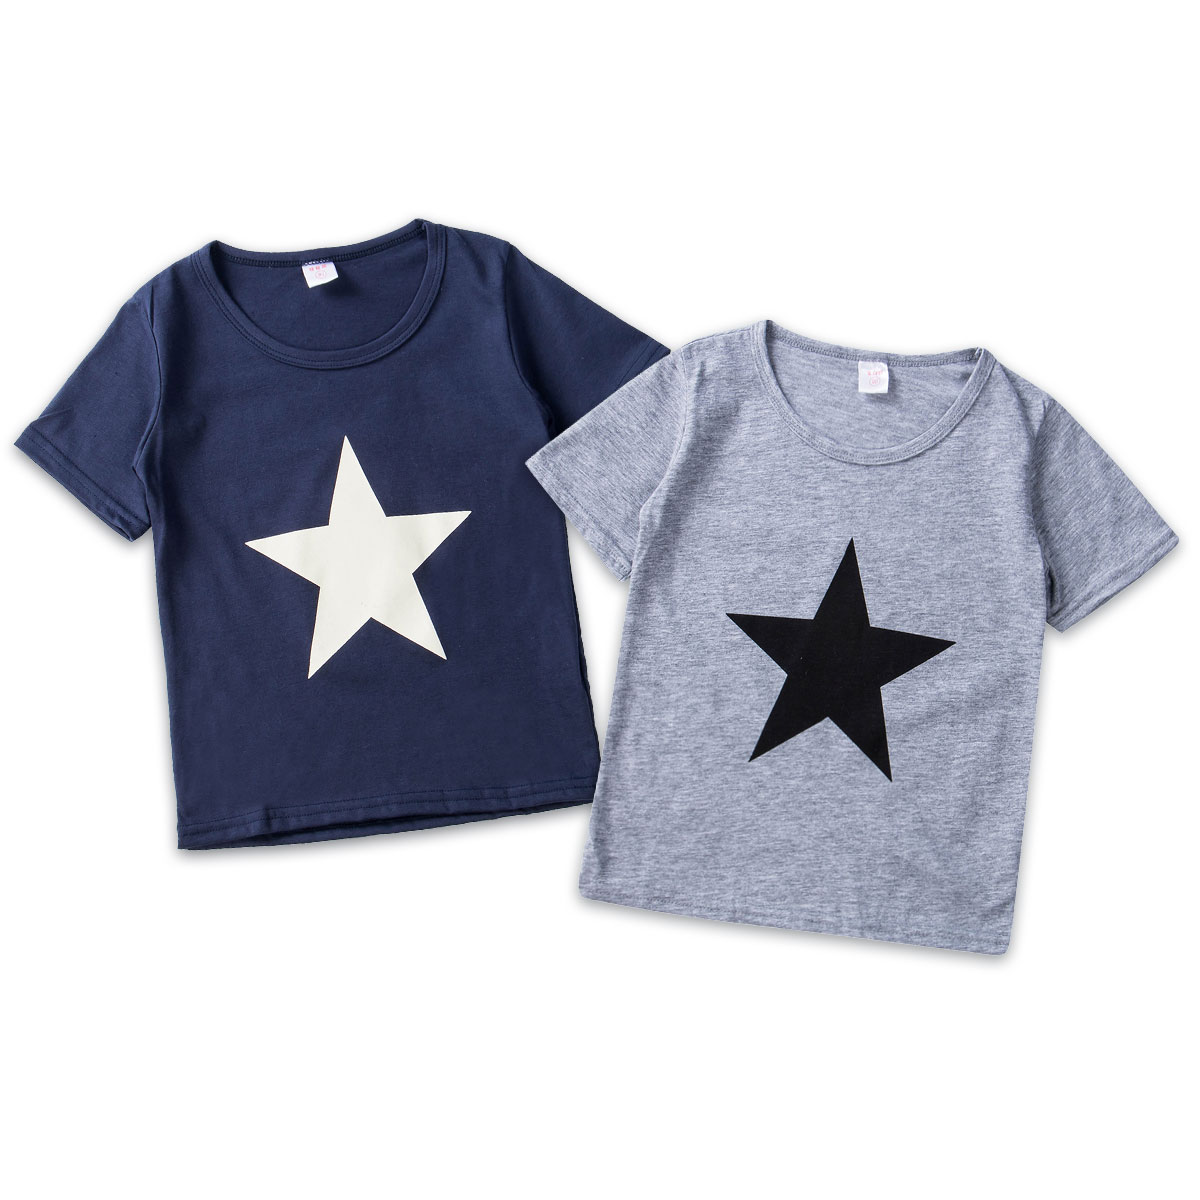 Boys T-Shirts Costumes Tops Short-Sleeve Star-Print Child Casual Kid Tollder title=